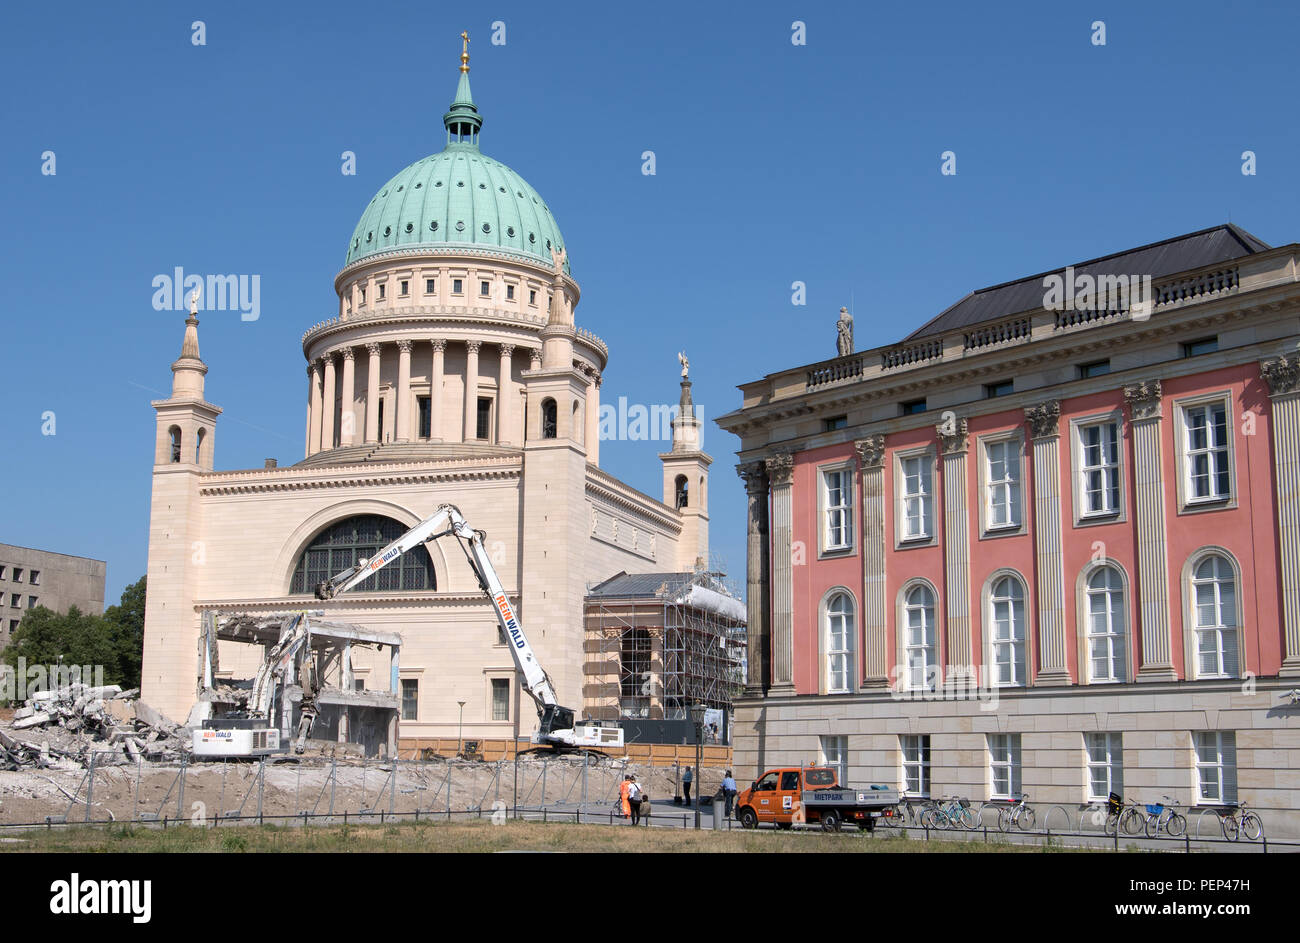 16 August 2018, Germany, Potsdam: Excavators demolish the last remains of the building of the old University of Applied Sciences against the backdrop of the Nikolaikirche. Construction of new buildings on the site is scheduled to begin in 2019 and the site is scheduled for completion in 2021. Photo: Ralf Hirschberger/dpa - Stock Image